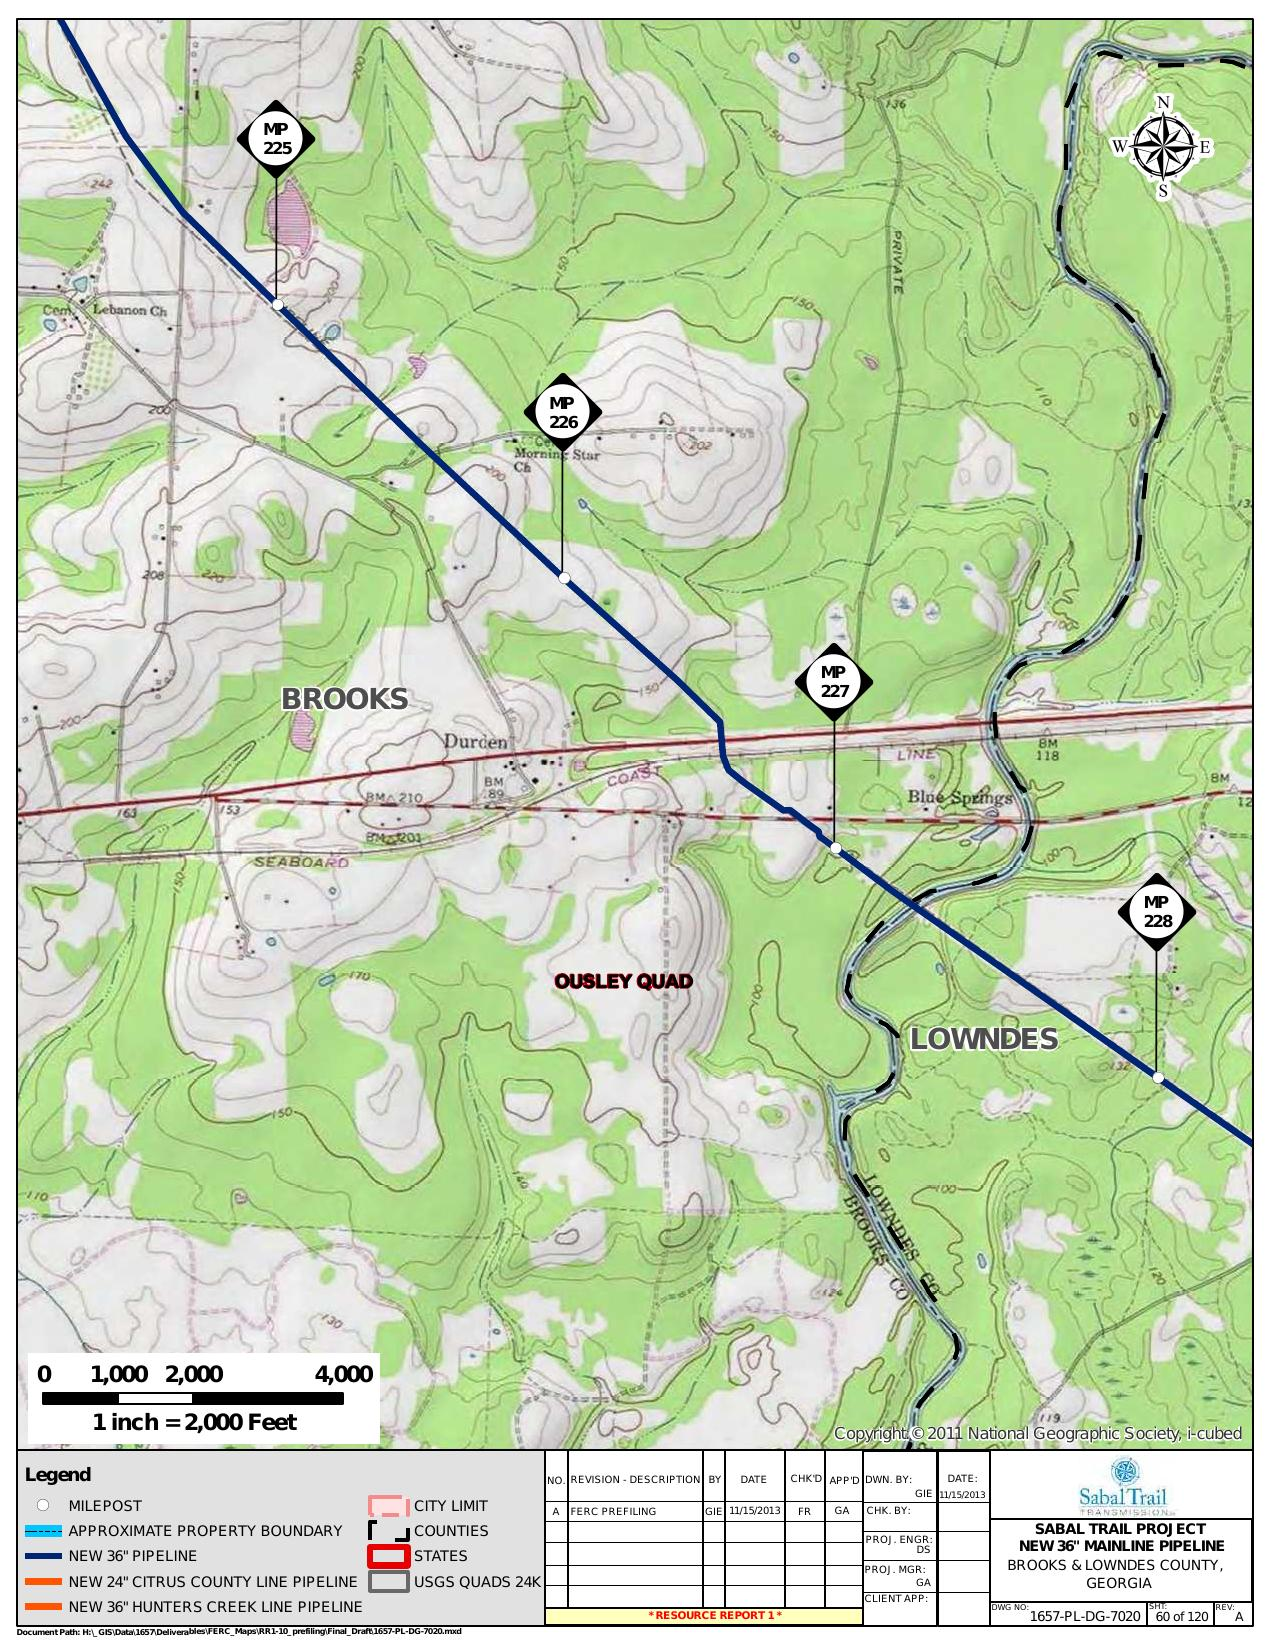 Withlacoochee River, Brooks and Lowndes County, Georgia, in General Project Description, by SpectraBusters, for FERC Docket No. PF14-1-000, 15 November 2013, converted by SpectraBusters